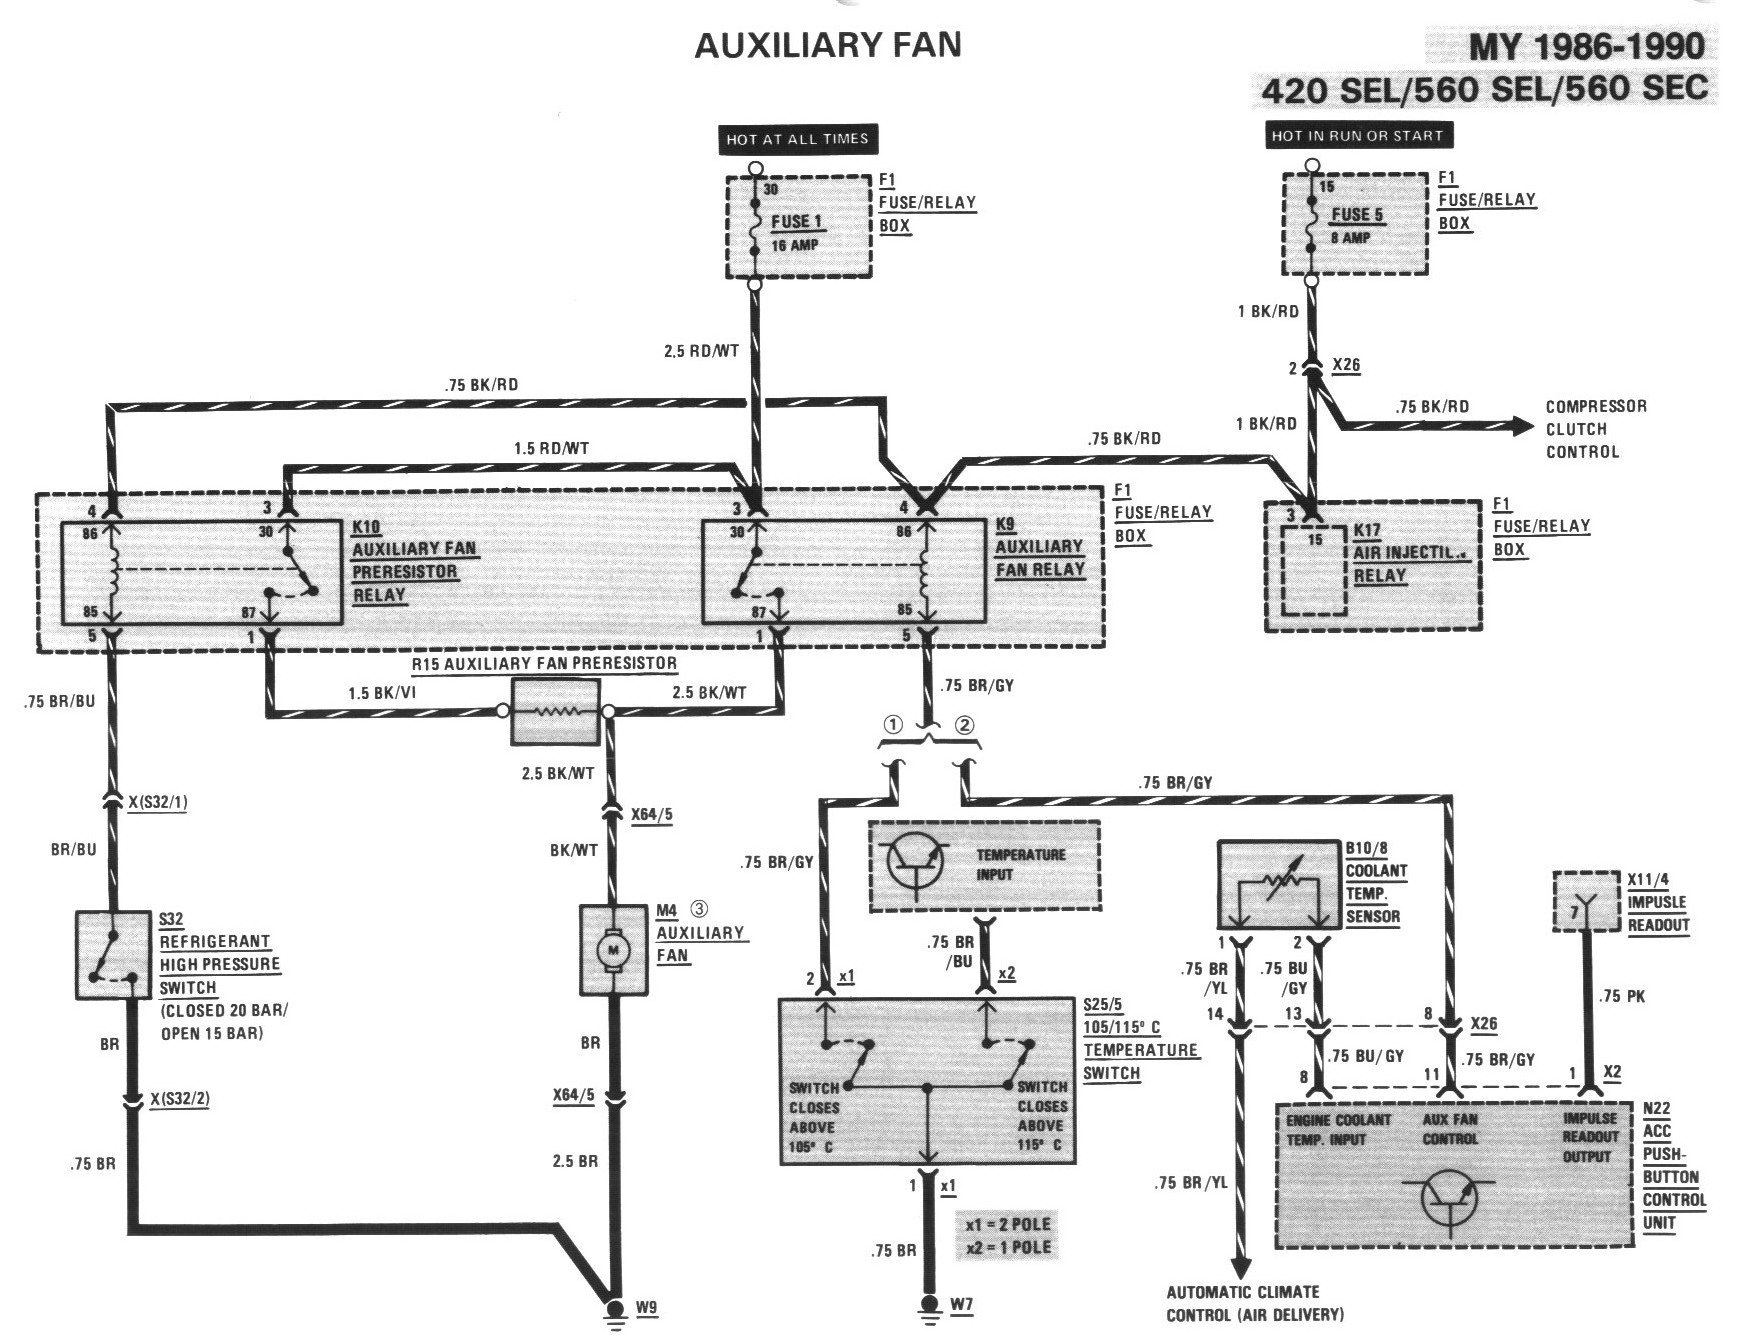 Mercedes Benz C200 Fuse Box Diagram Starting Know About Wiring C180 Diagrams 1986 420 Sel A C Auxiliary Fan Does Not Come On